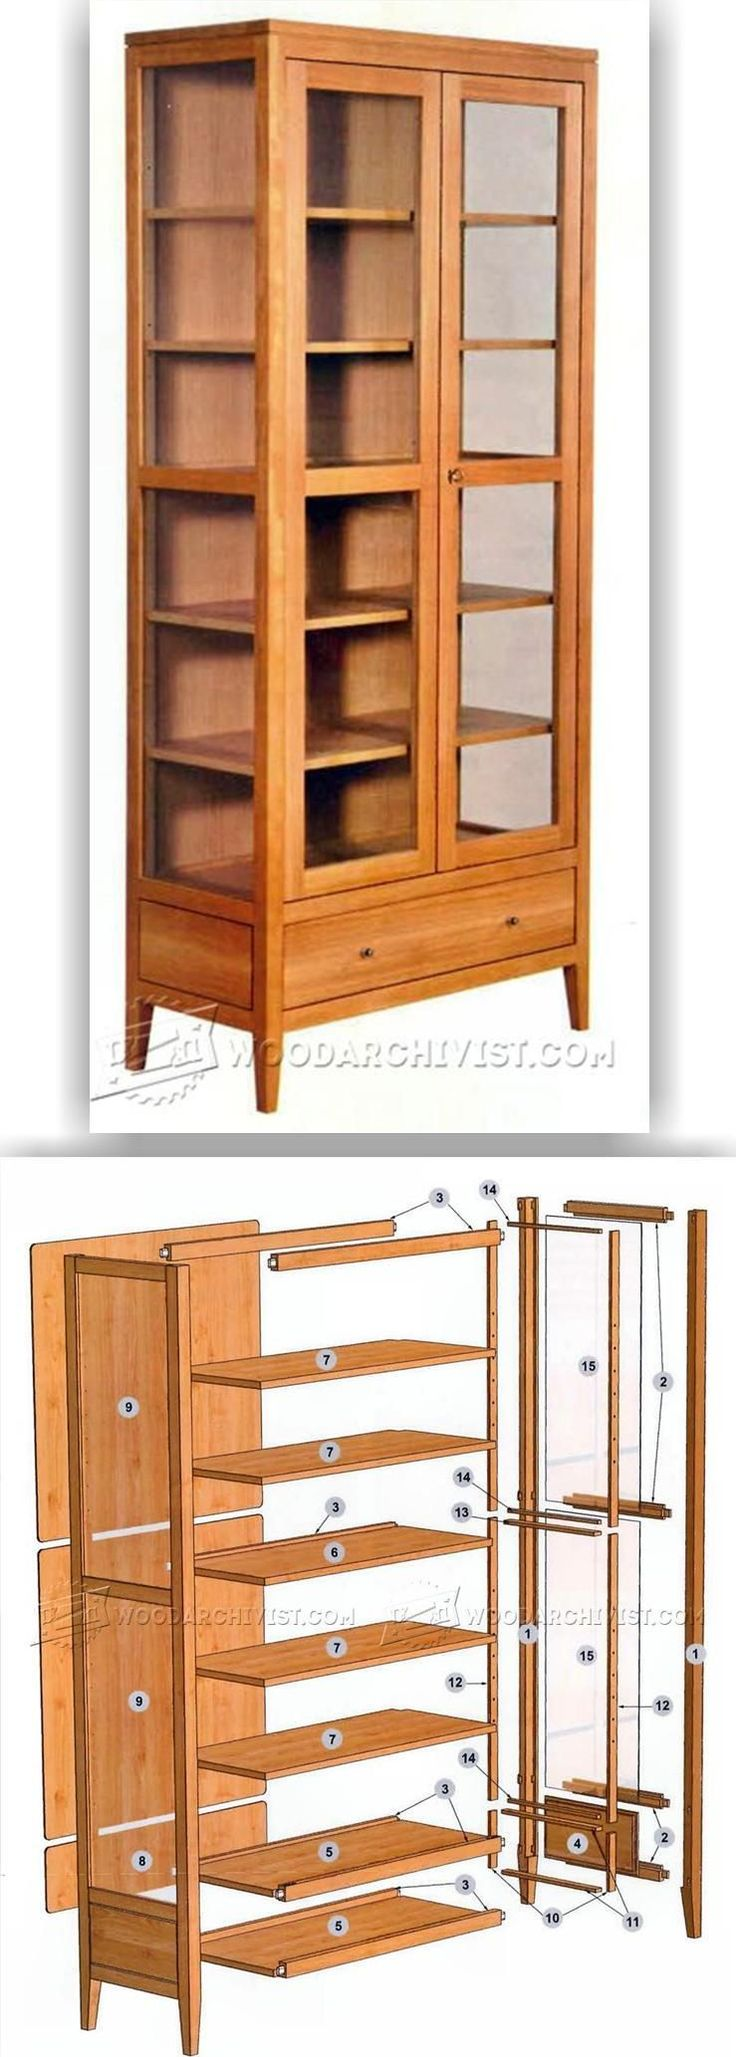 best woodworking ideas images on pinterest woodworking home